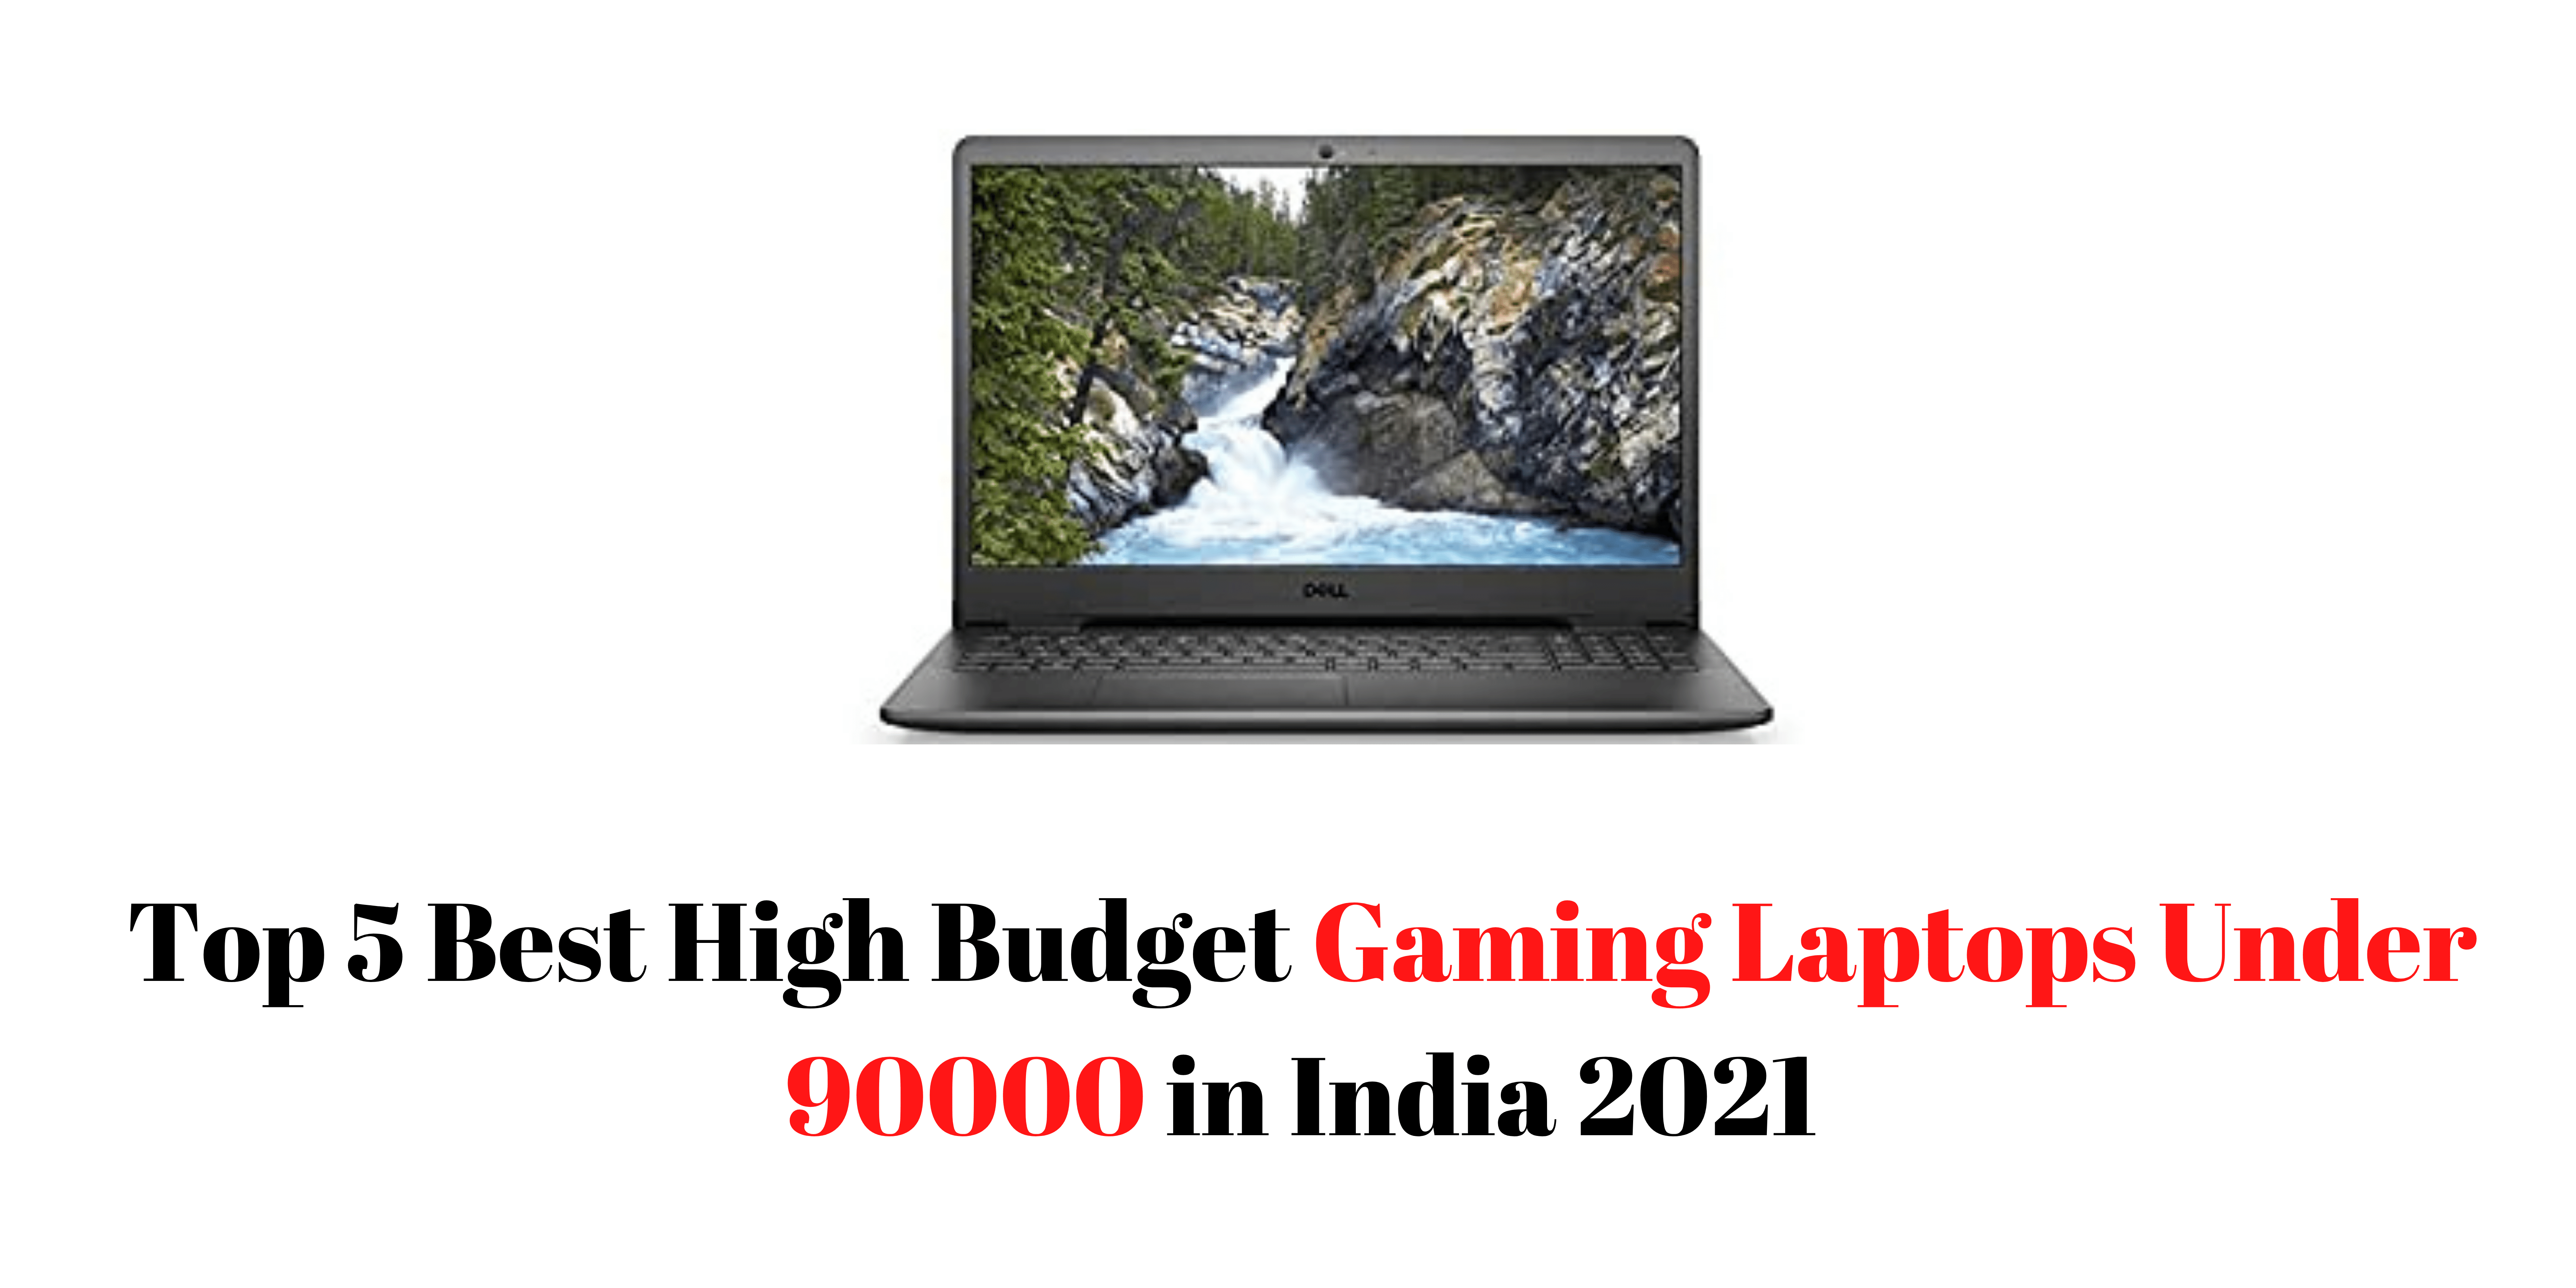 Top 5 Best High Budget Gaming Laptops Under 90000 in India 2021